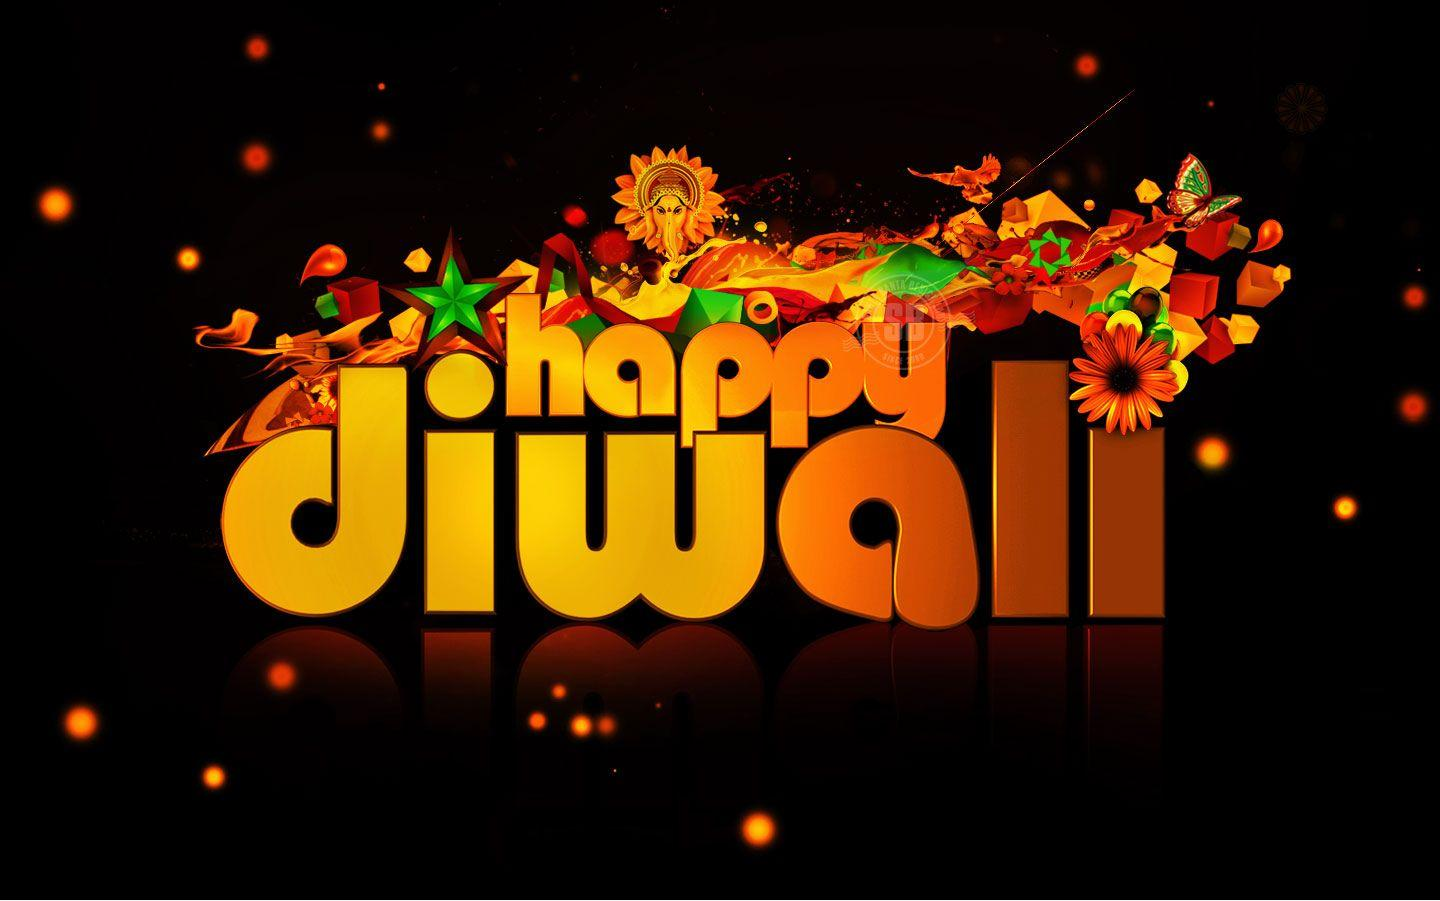 Deepavali festival in kerala deepavali wishes and deepavali deepavali festival in kerala deepavali wishes and deepavali greetings most beautiful places in kerala kristyandbryce Image collections